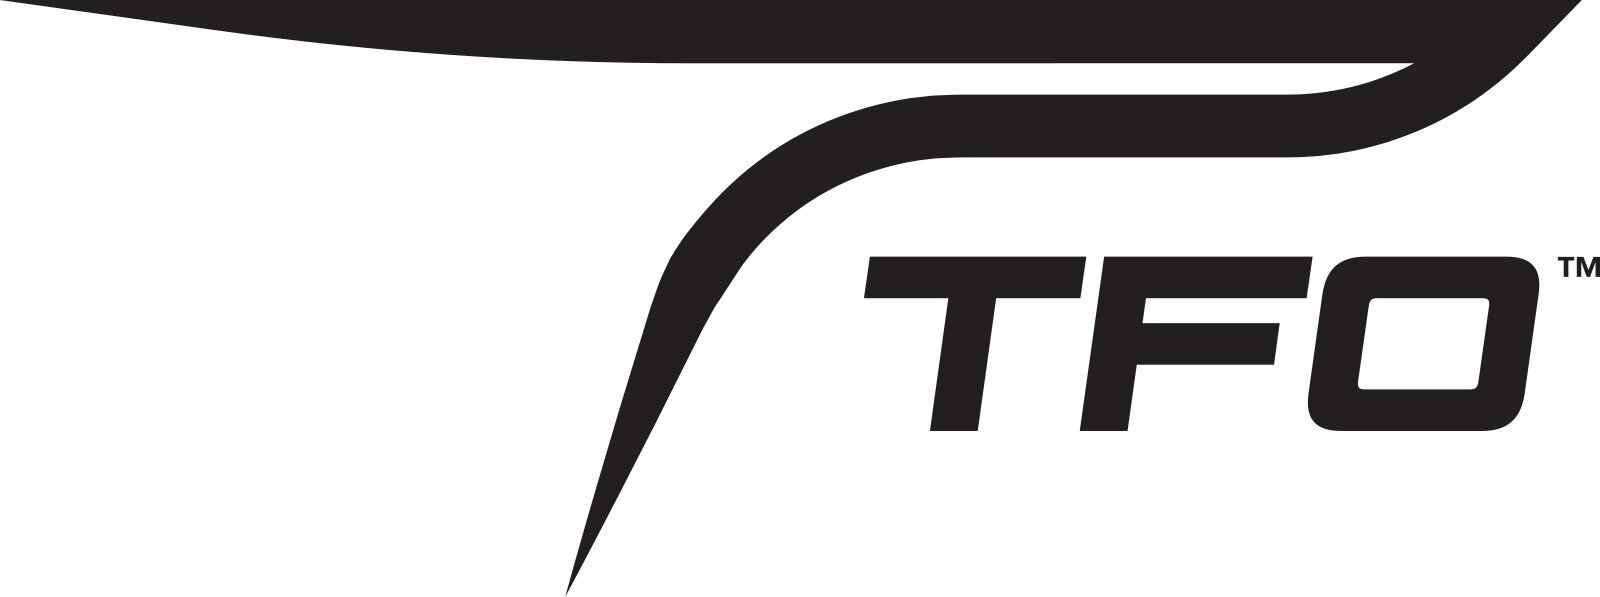 tfo-logo-t-mark-initials-bottom.jpg